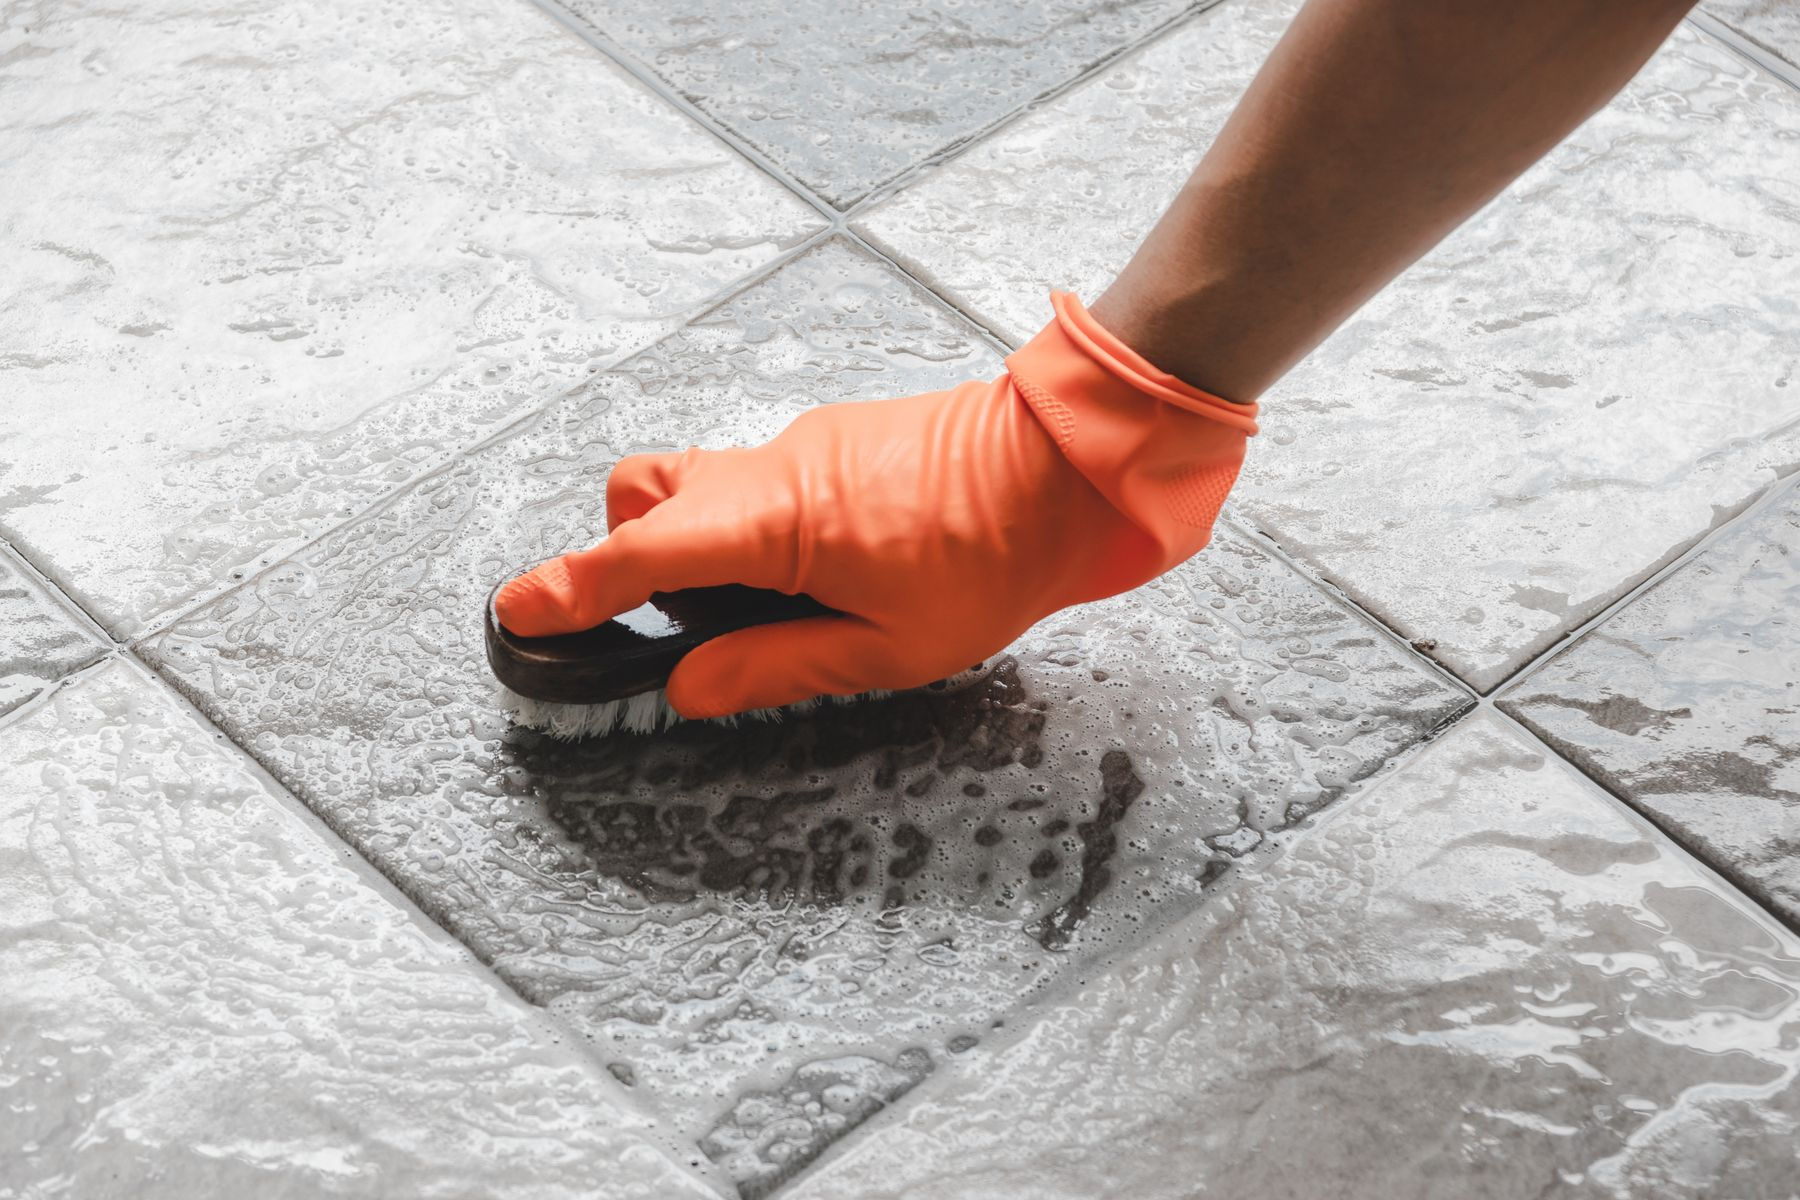 person wearing orange gloves scrubbing grout of bathroom tiles